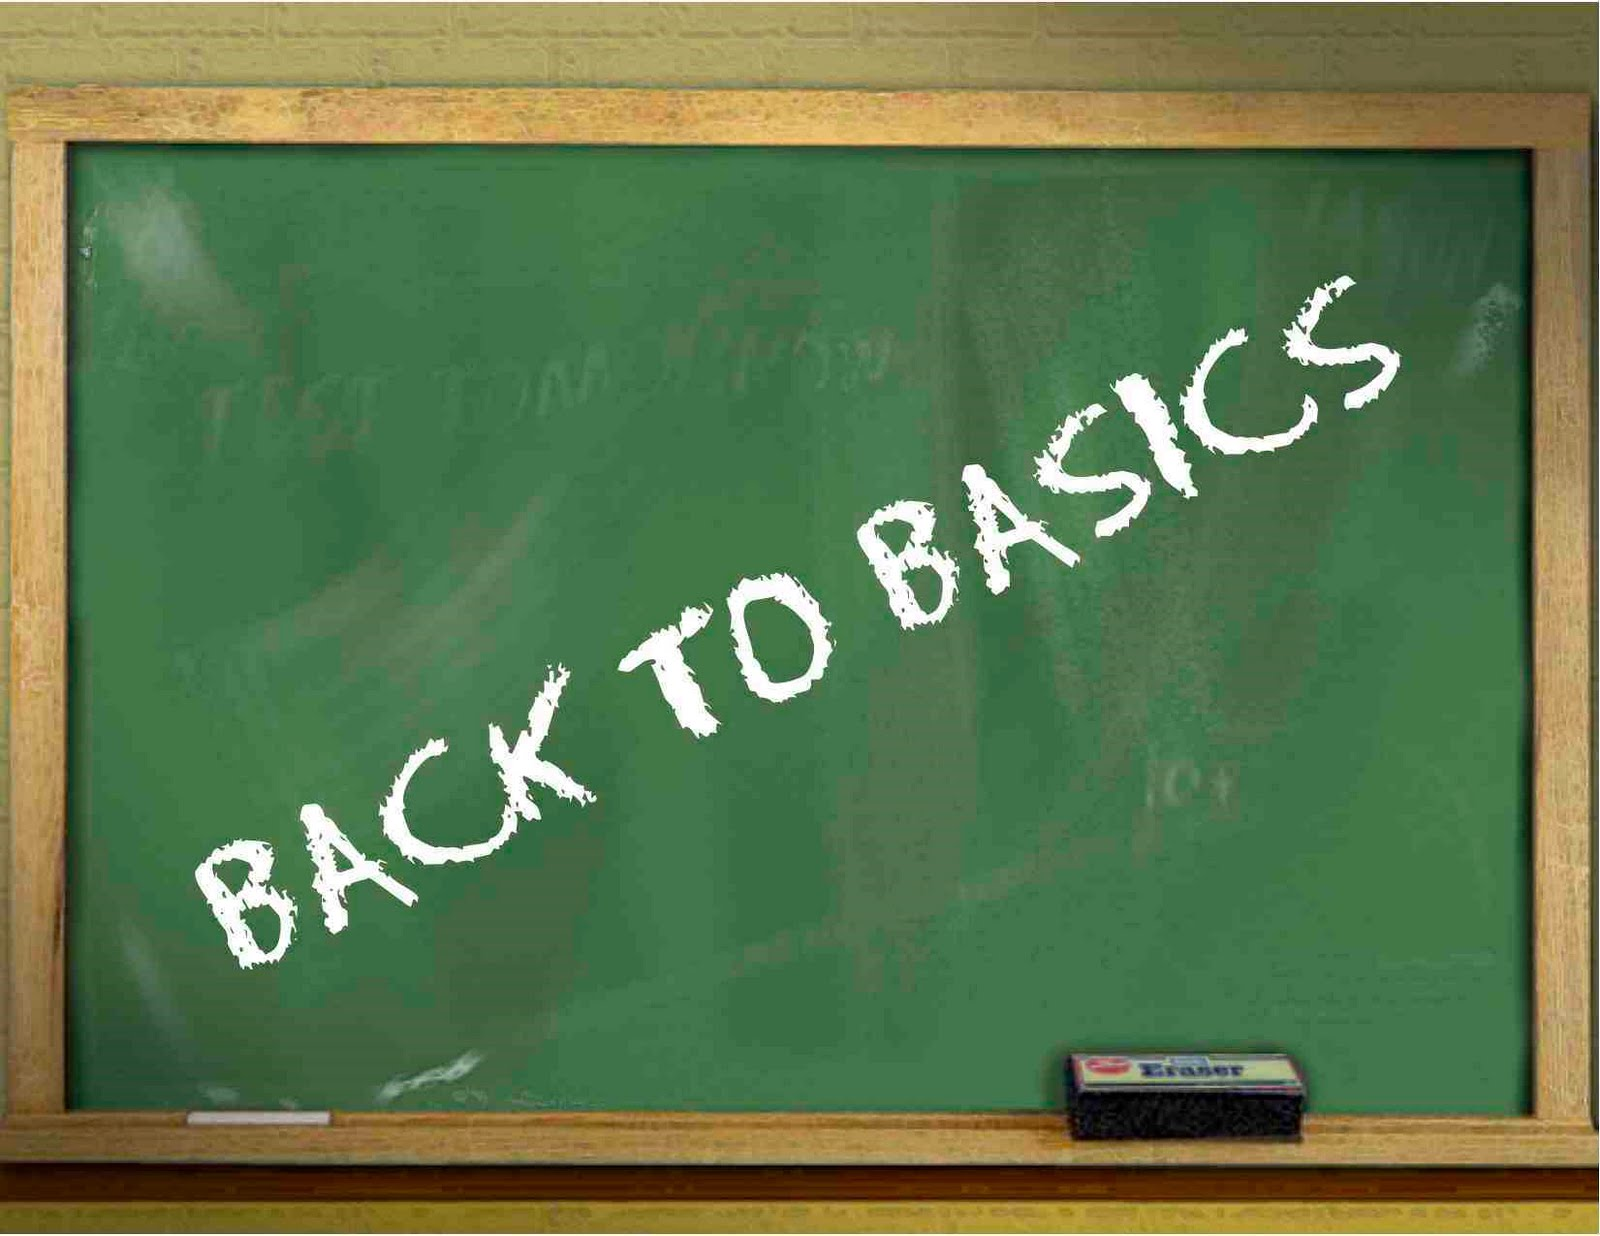 getting back to basics To get back to basics definition: to revert to a simpler method, eg of living or doing business | meaning, pronunciation, translations and examples.